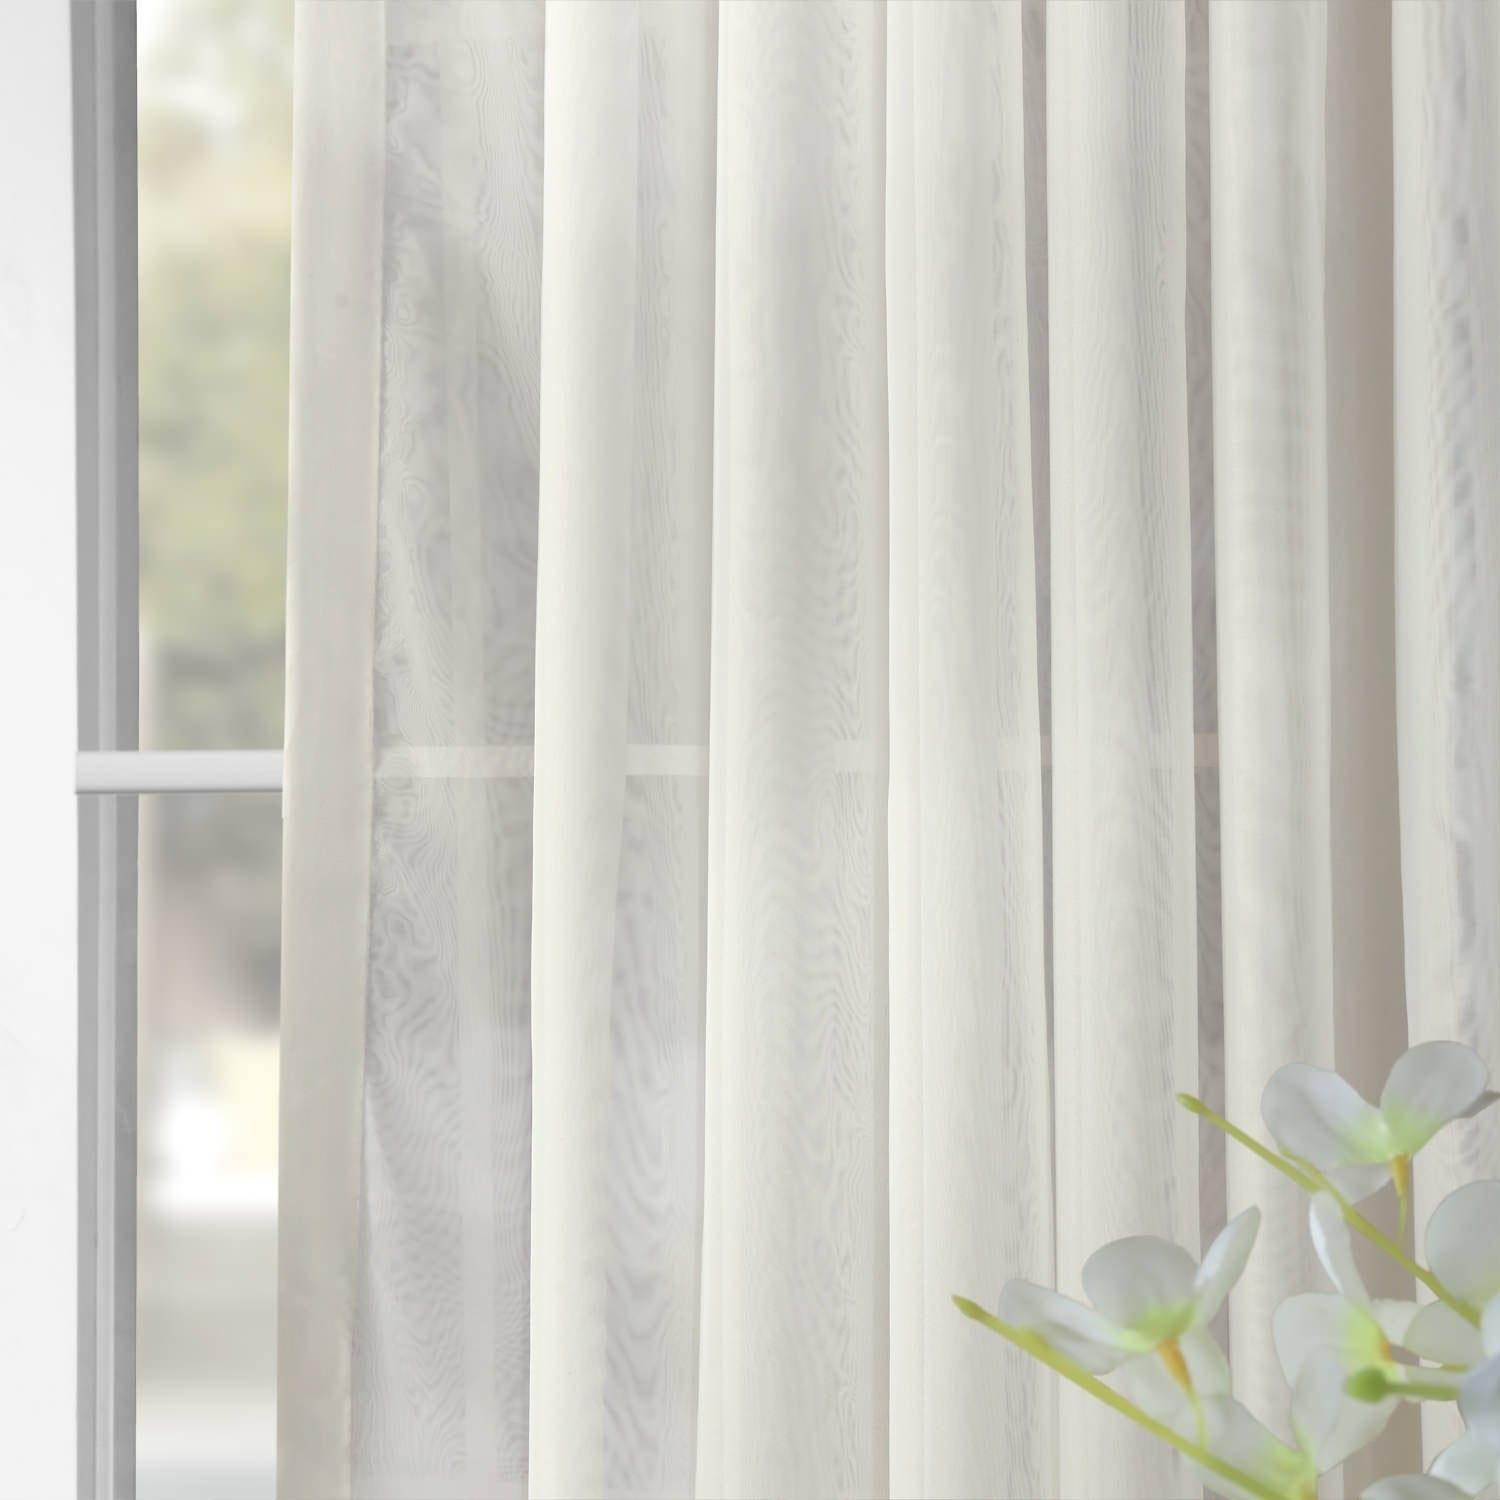 Exclusive Fabrics Signature Extrawide Double Layer Sheer Curtain Panel For Signature Extrawide Double Layer Sheer Curtain Panels (View 3 of 11)